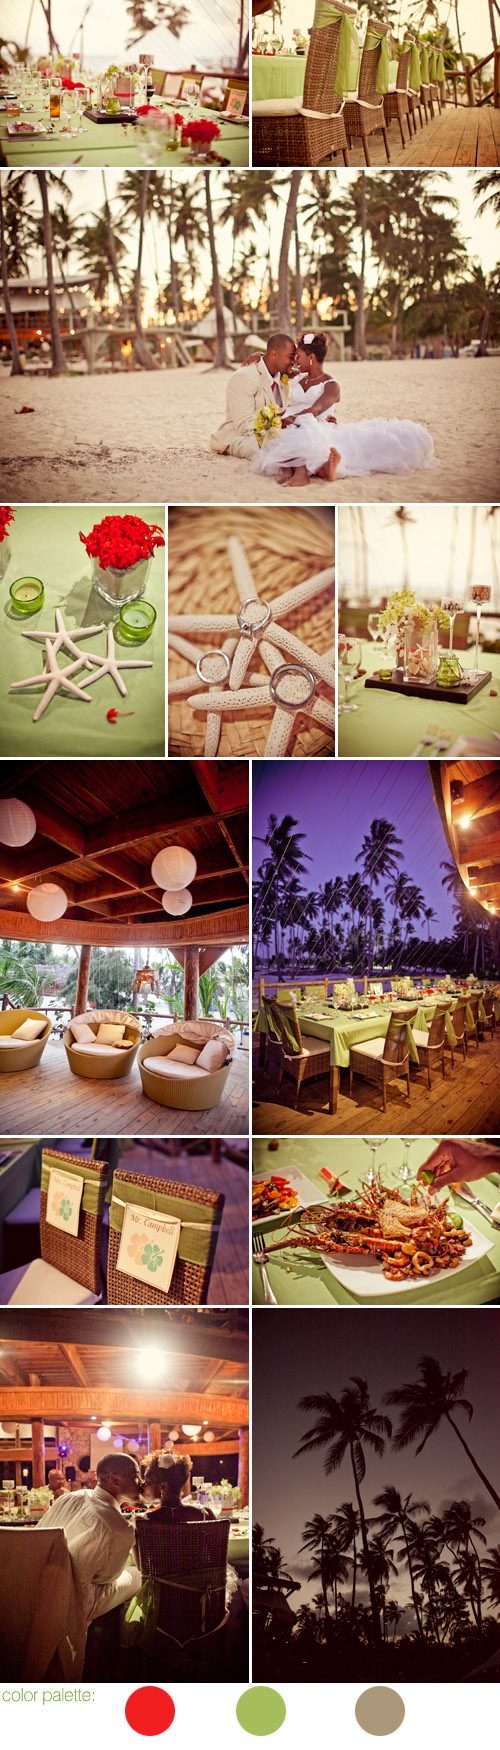 stylish tropical beach destination wedding in Punta Cana, Dominican Republic, photos by SB Childs Photography